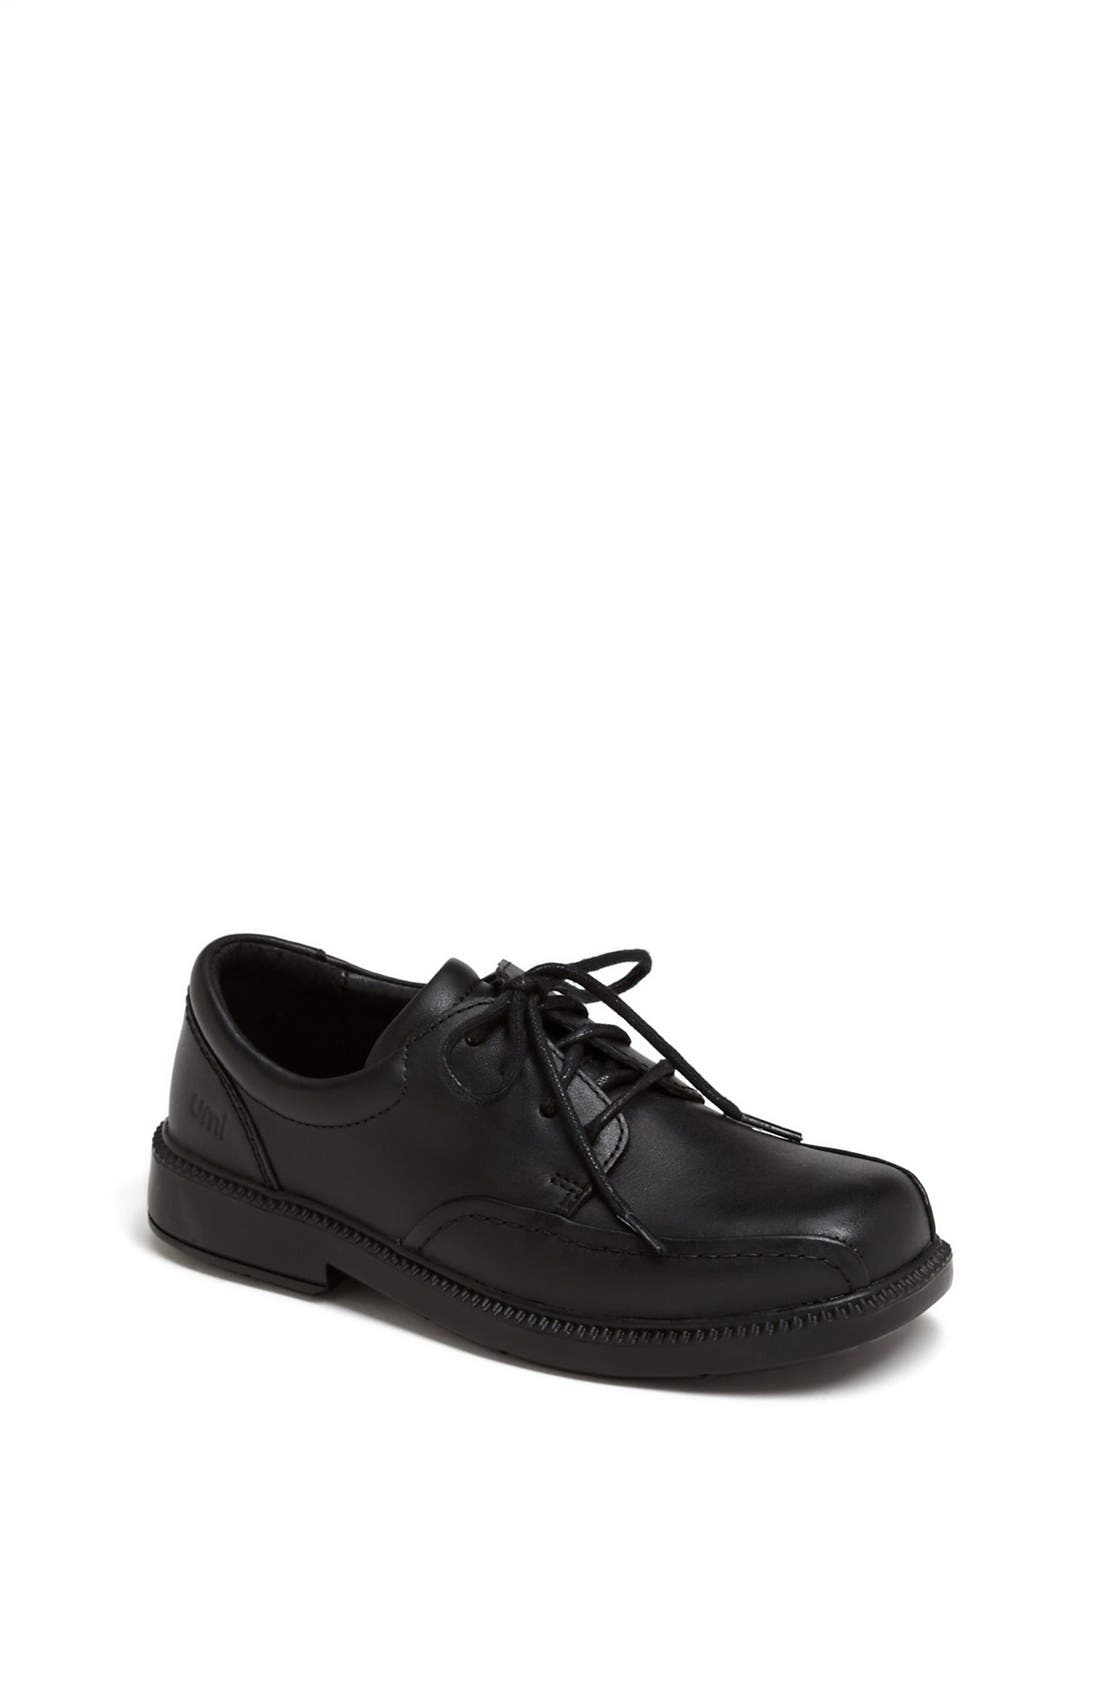 Main Image - Umi 'Witton' Dress Shoe (Toddler, Little Kid & Big Kid)